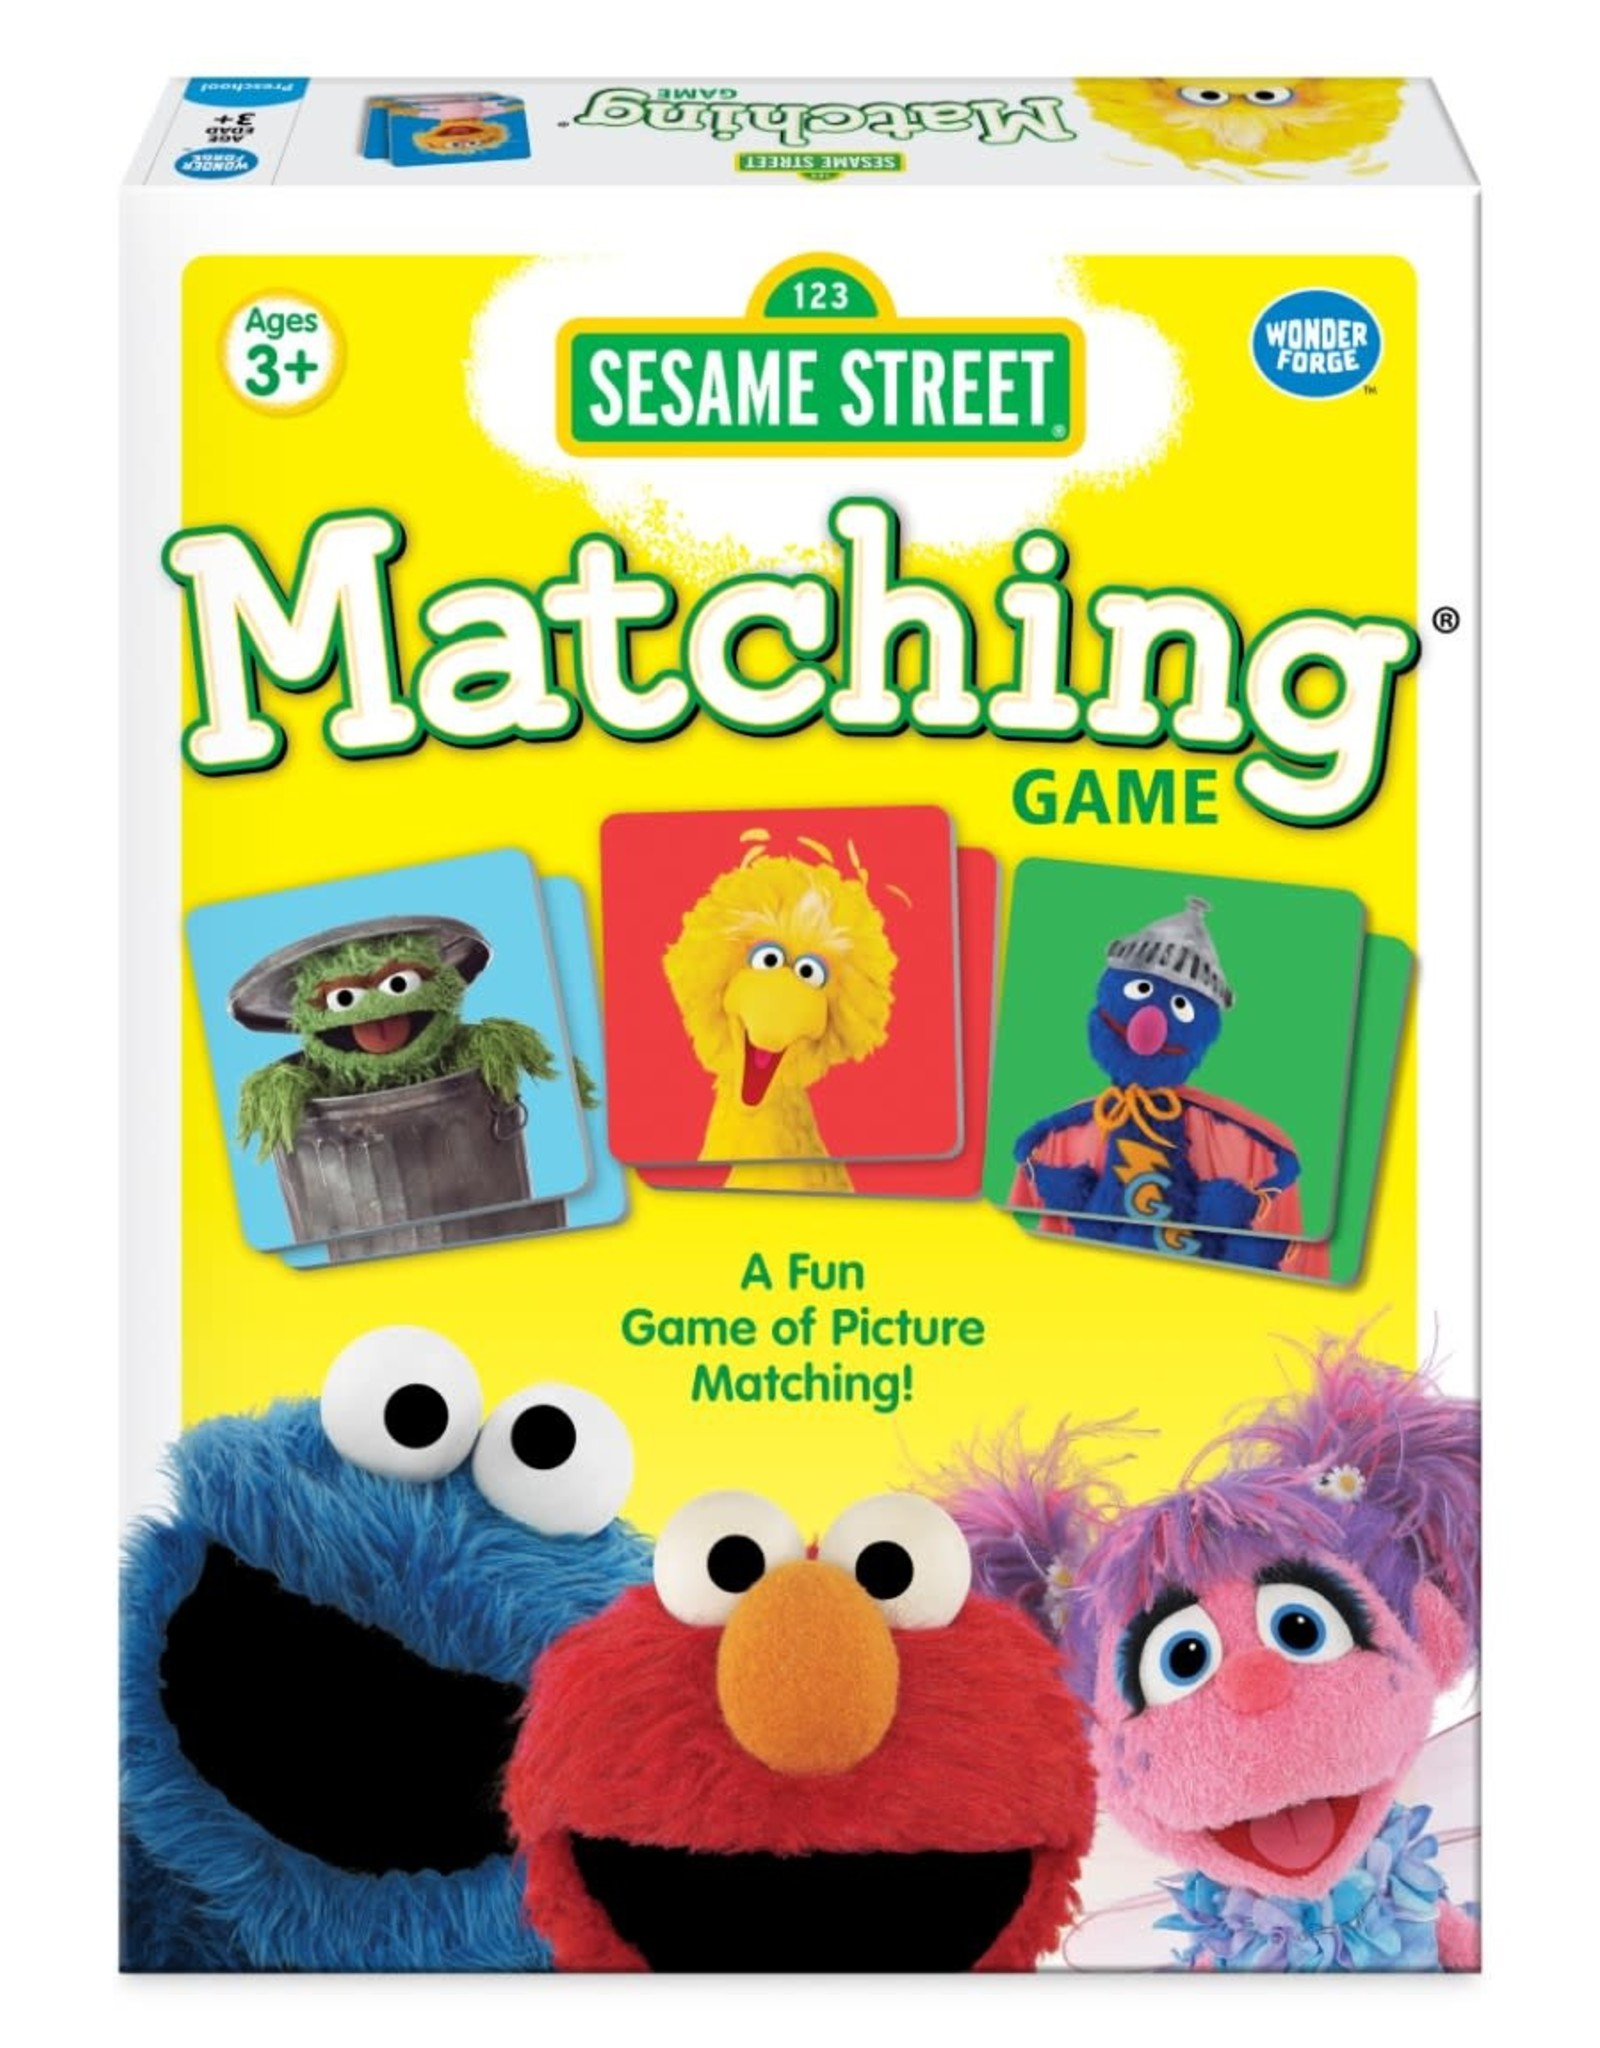 Wonder Forge Matching Card Game - Sesame Street